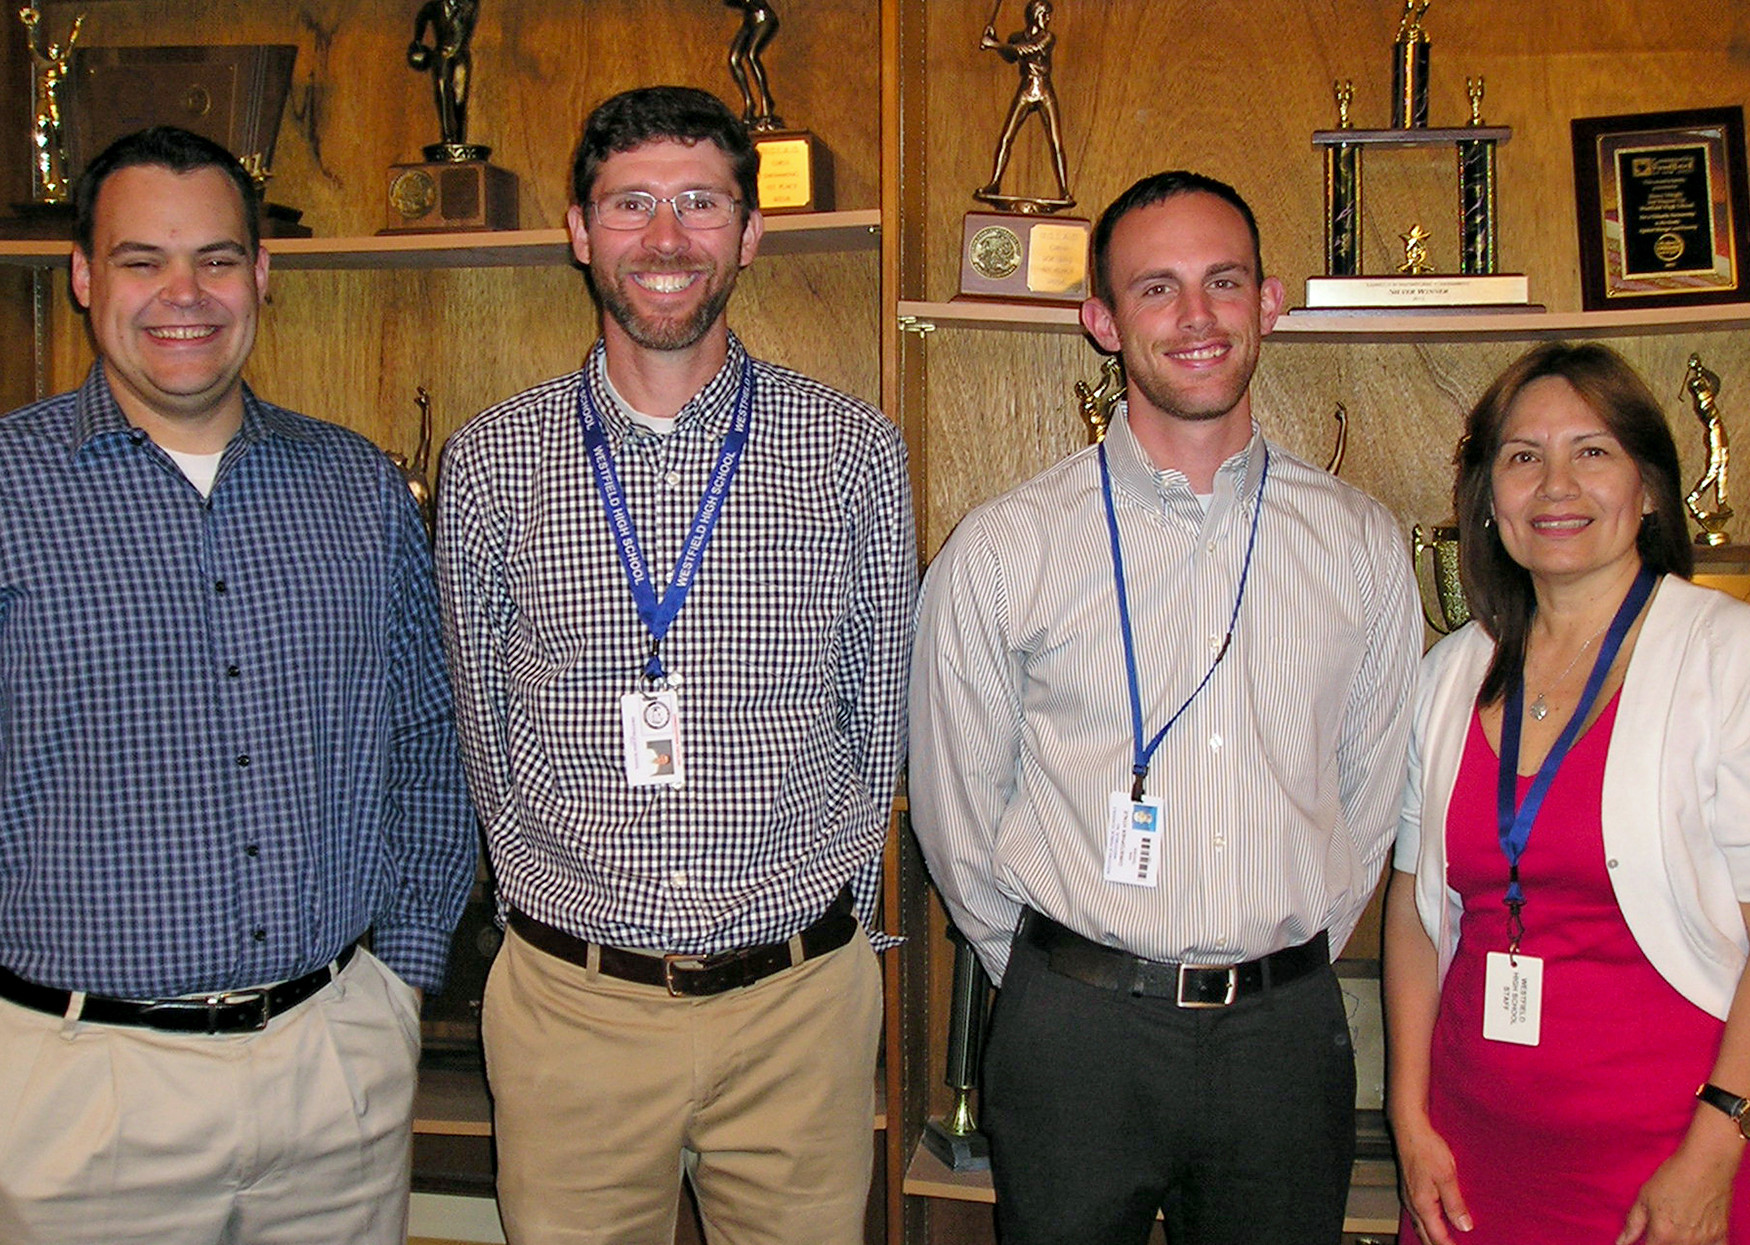 (above) Westfield High School teaching awards were presented to (l-r) Scott Rutherford (Above and Beyond Award), Christopher Tafelski (Distinguished Teacher of the Year Award), Christopher Vitale (WHS-PTSO Outstanding Teacher of the Year Award), and Maria Martinez (Robert and Linda Foose Memorial Award).